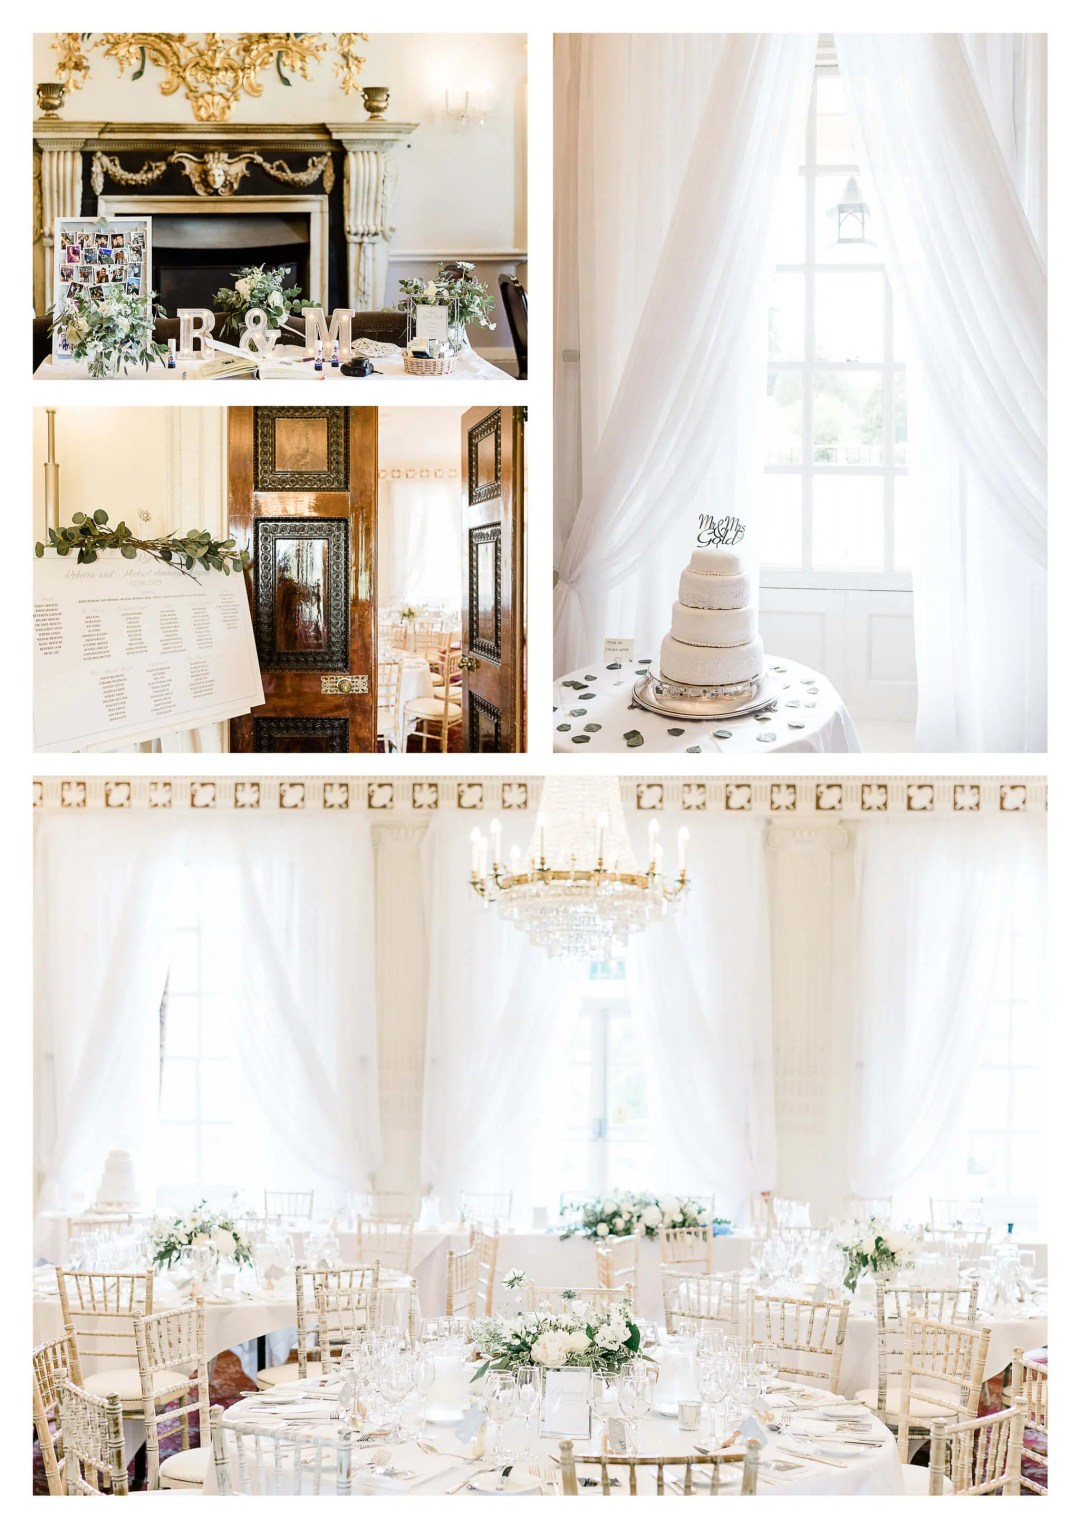 Buxted Park Wedding Breakfast Decorations for ballroom | Uckfield photography